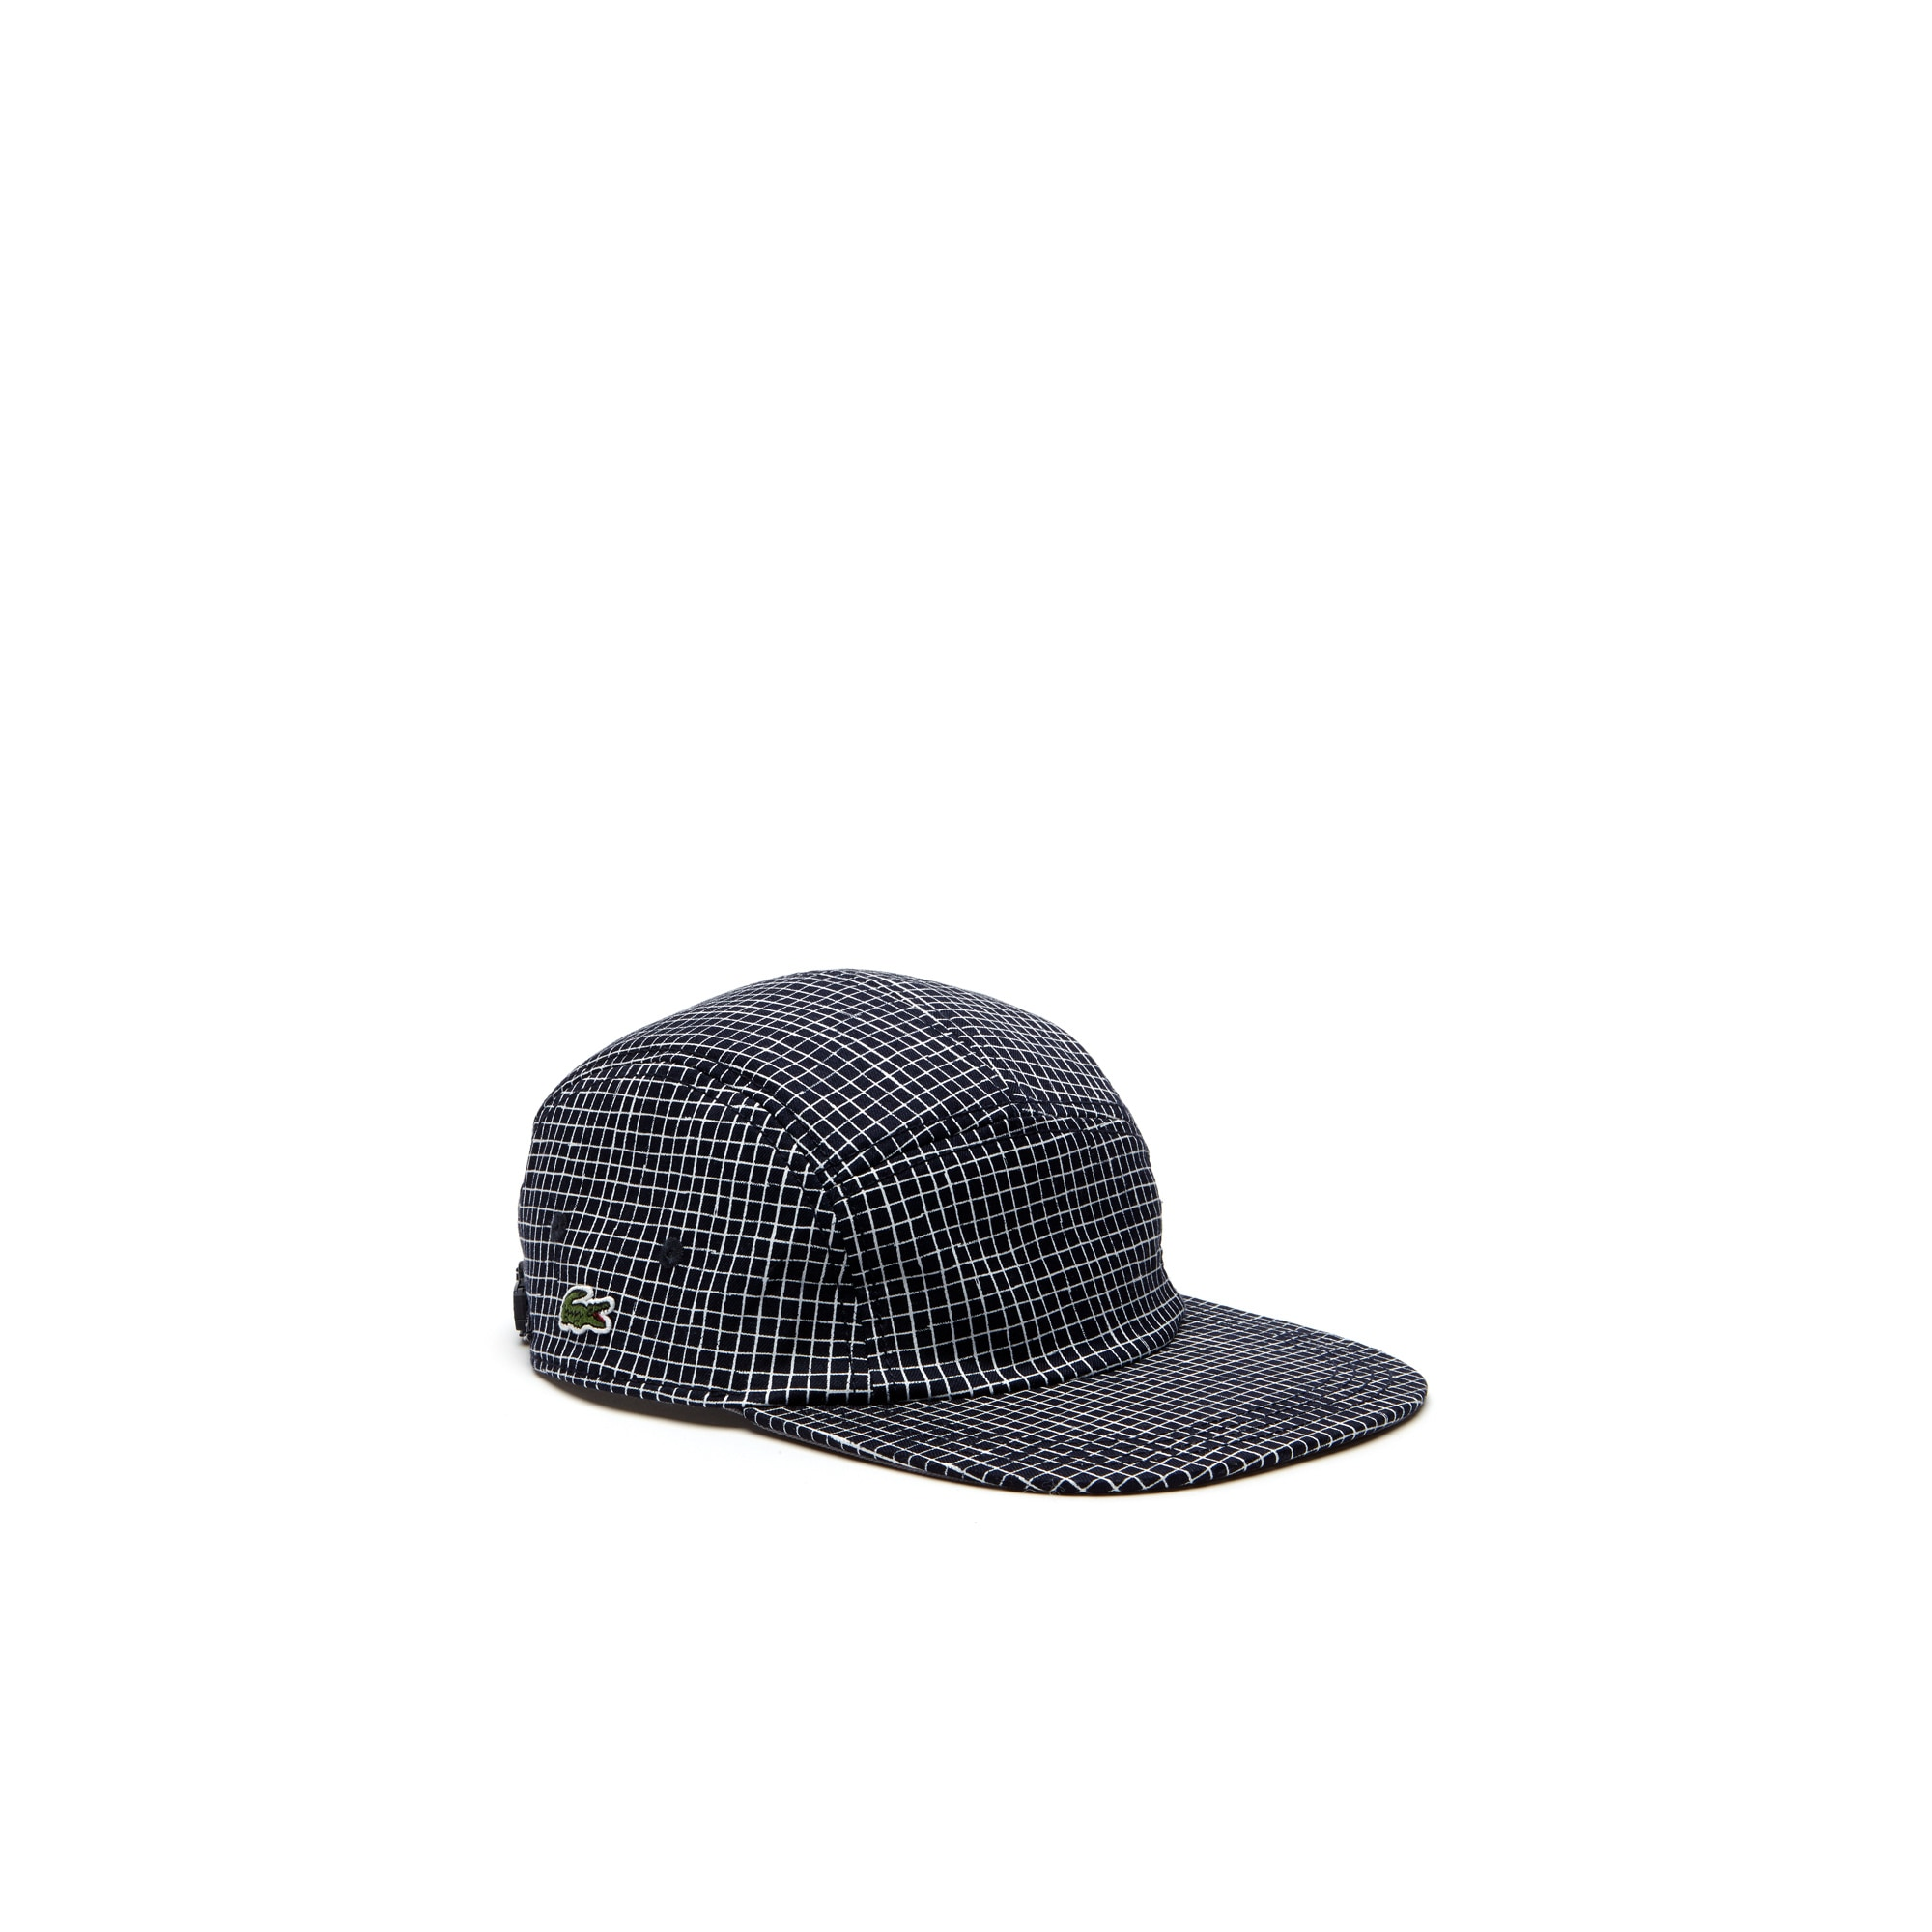 Men's Lacoste LIVE Mini Check Cotton Twill Cap